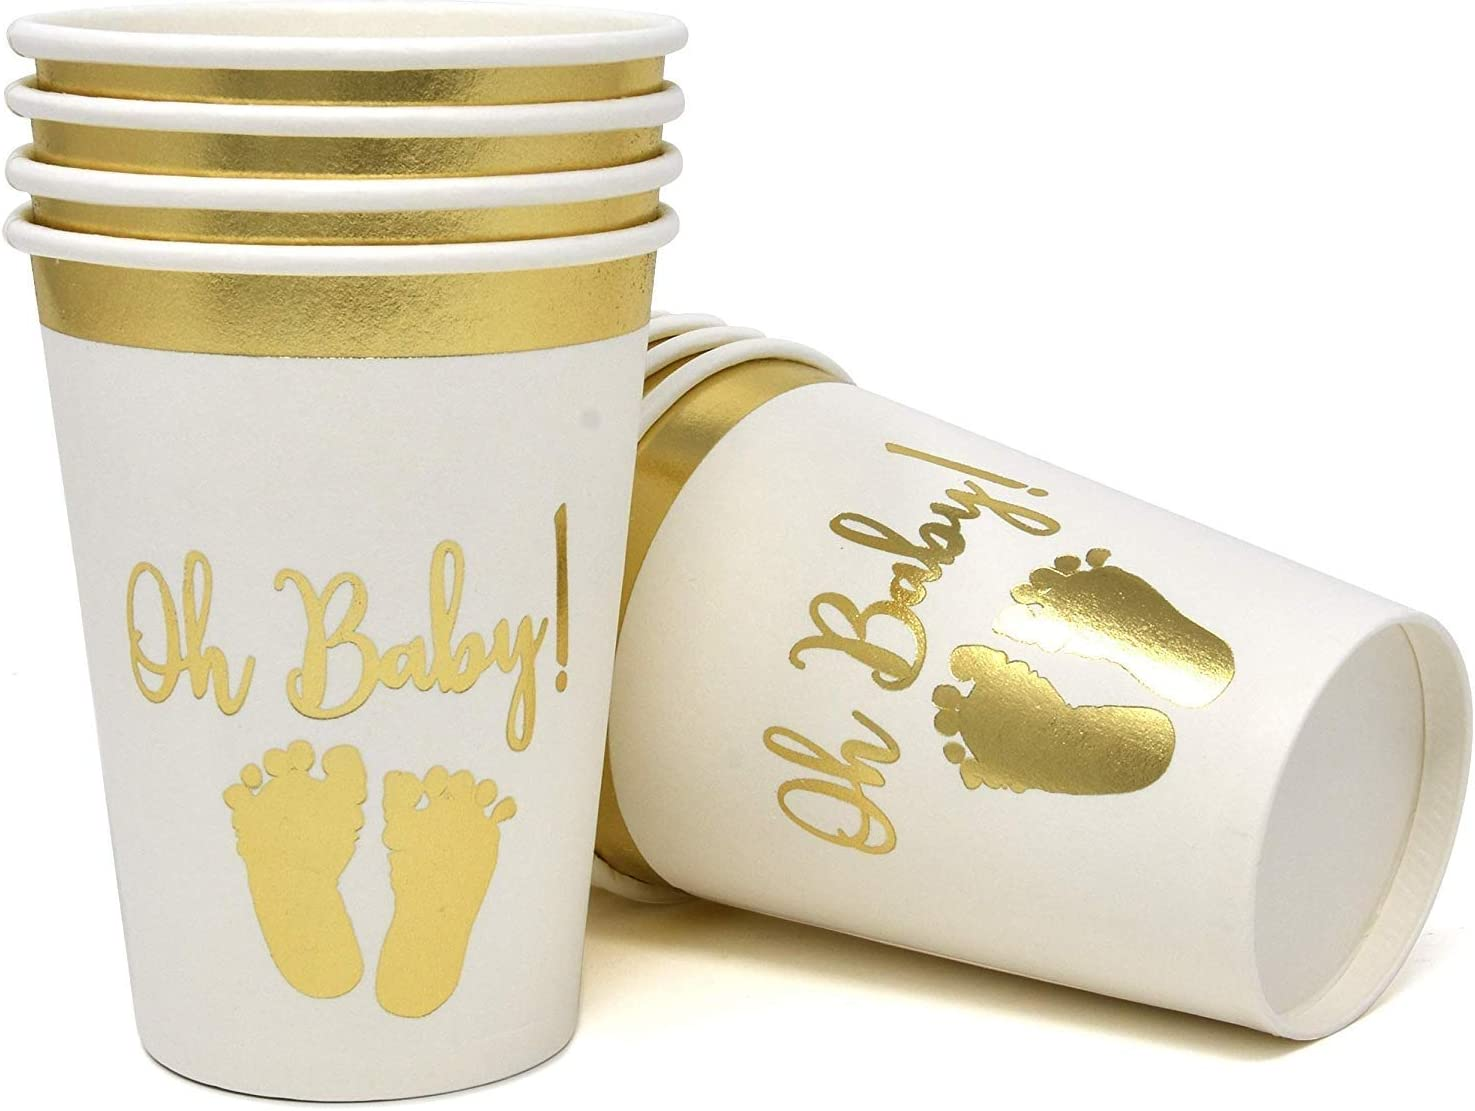 Gift Boutique 50 Baby Shower Cups 9 oz Paper Disposable Cup Tableware for Boys or Girls Neutral Gender Reveal Party Supplies Decorations Gold Foil and White Oh Baby with Baby Footprints